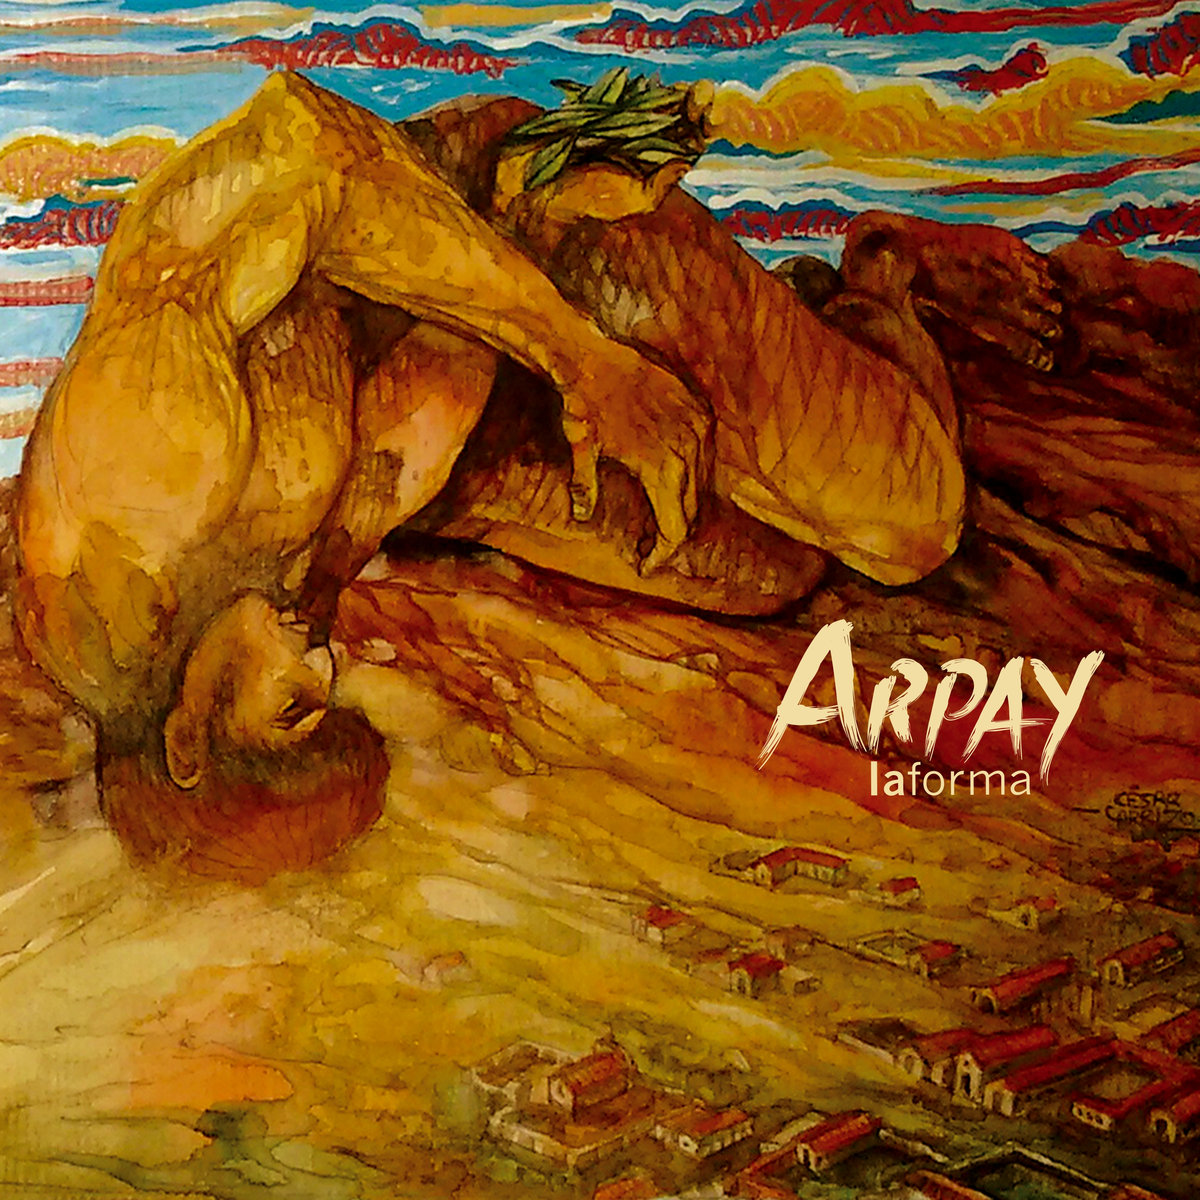 Arpay